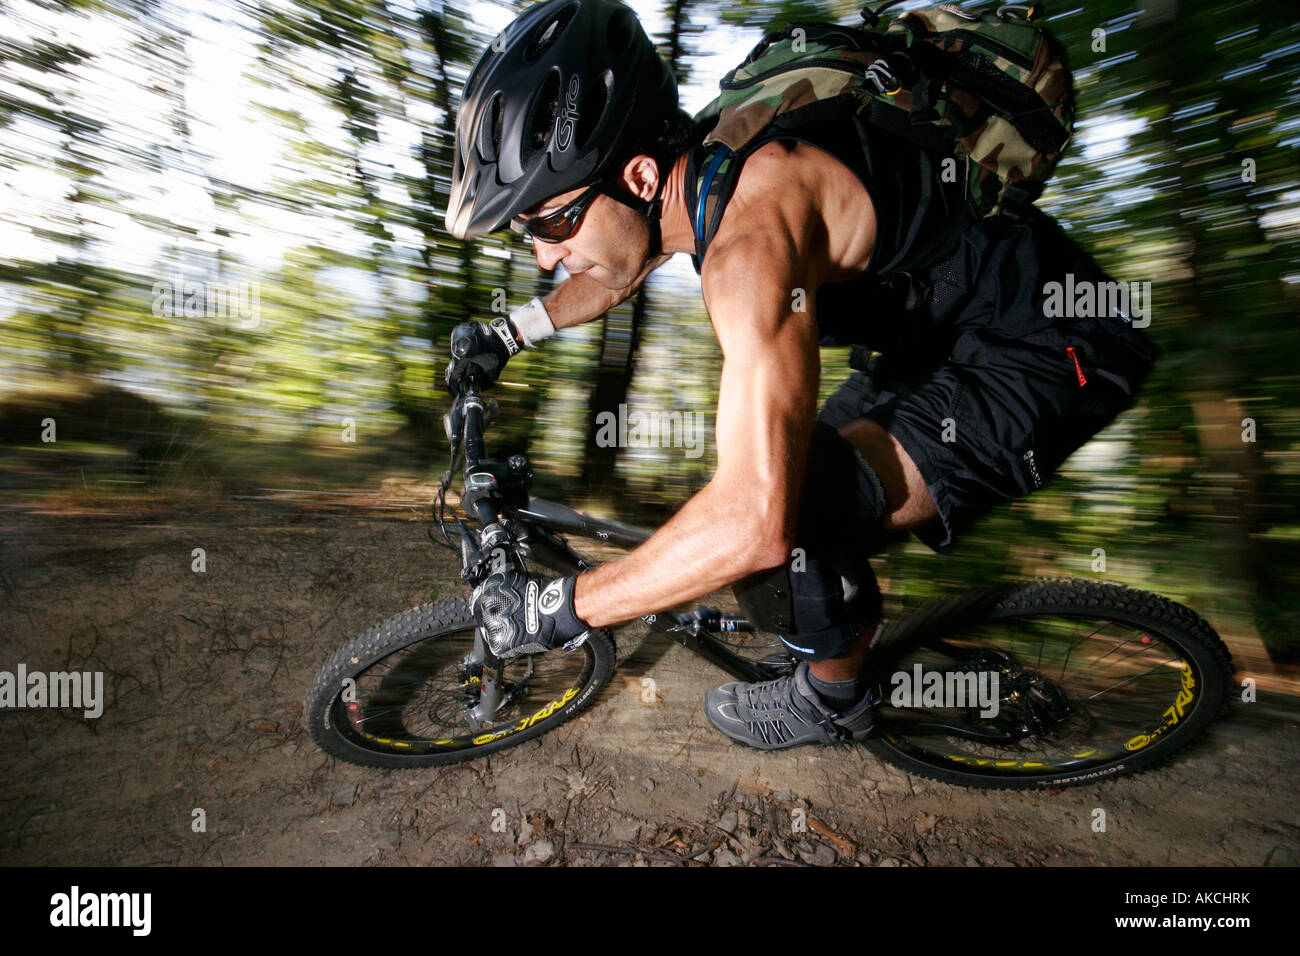 Boy riding mountain bike in the Italian Alps in the summer - Stock Image